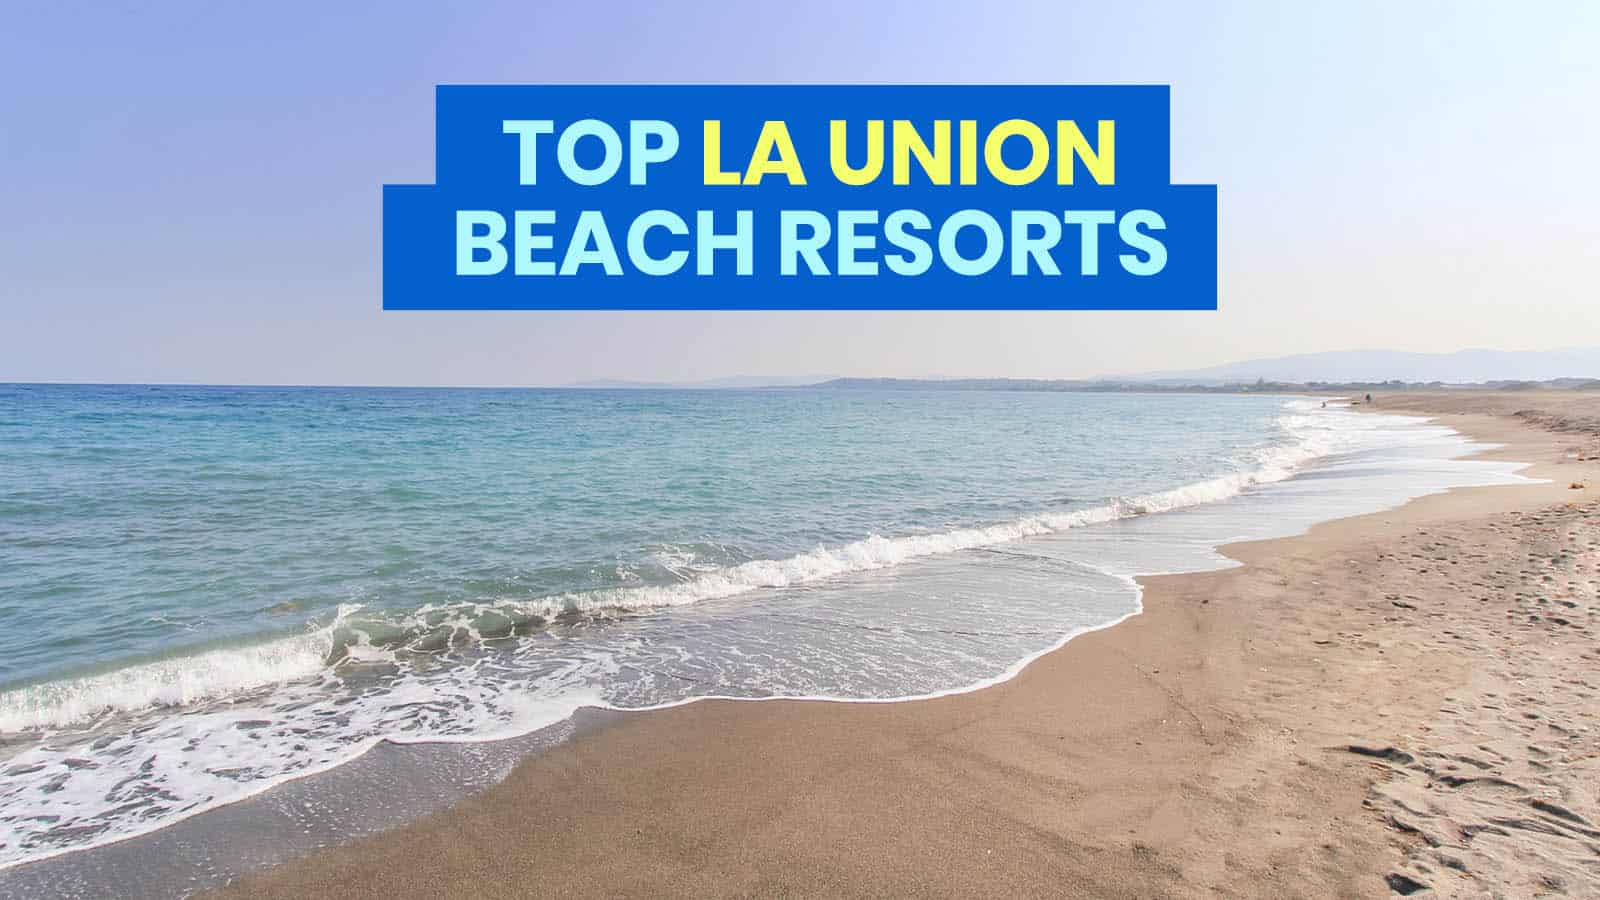 Top 10 La Union Beach Resorts The